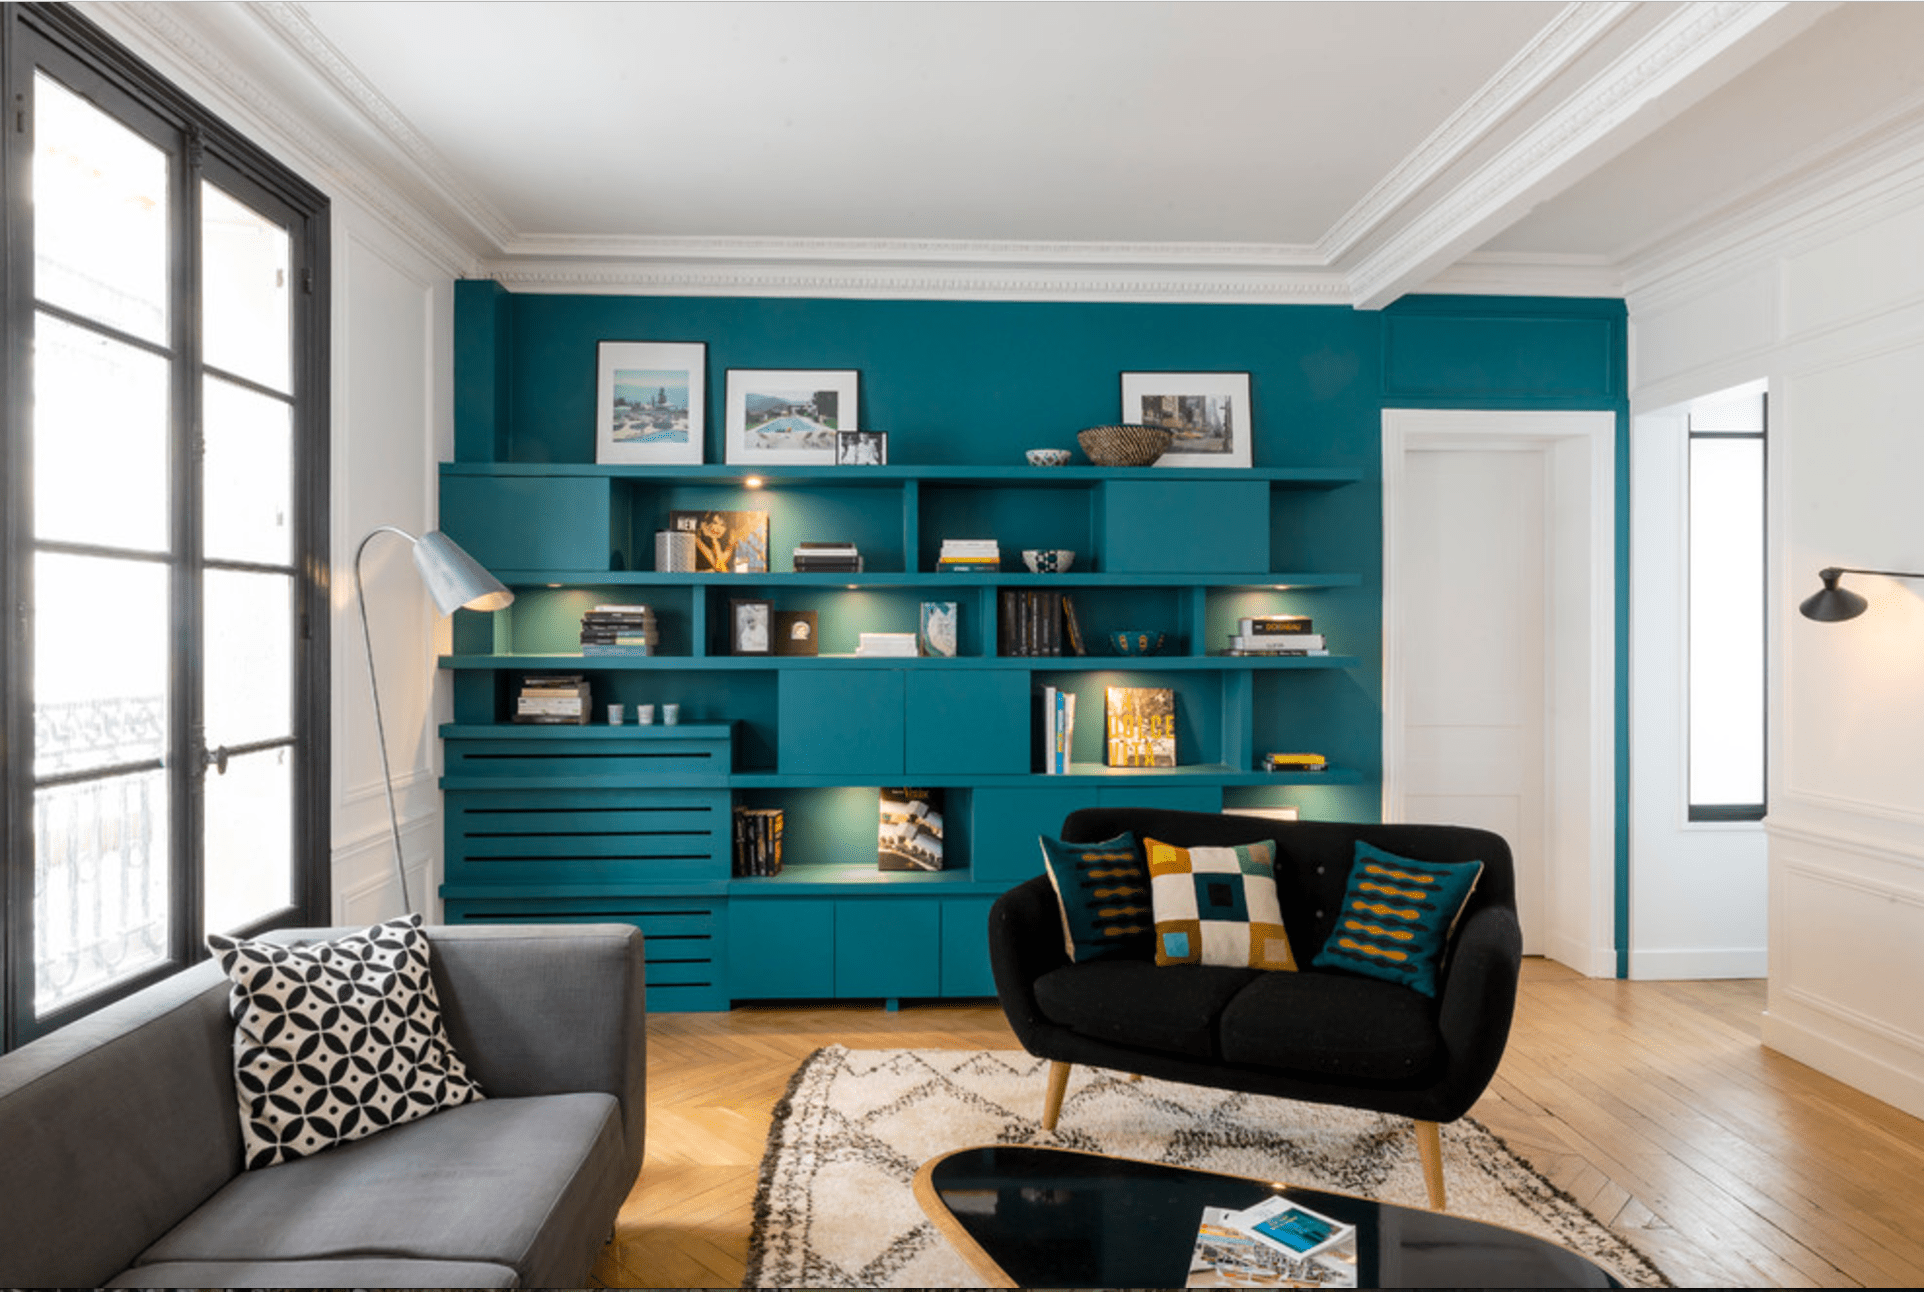 15 Outdated Home Decorating Trends Coming Back In 2020 Published In Pouted Magazine Home In 2020 Accent Walls In Living Room Living Room Turquoise Living Room Accents #turquoise #living #room #accents